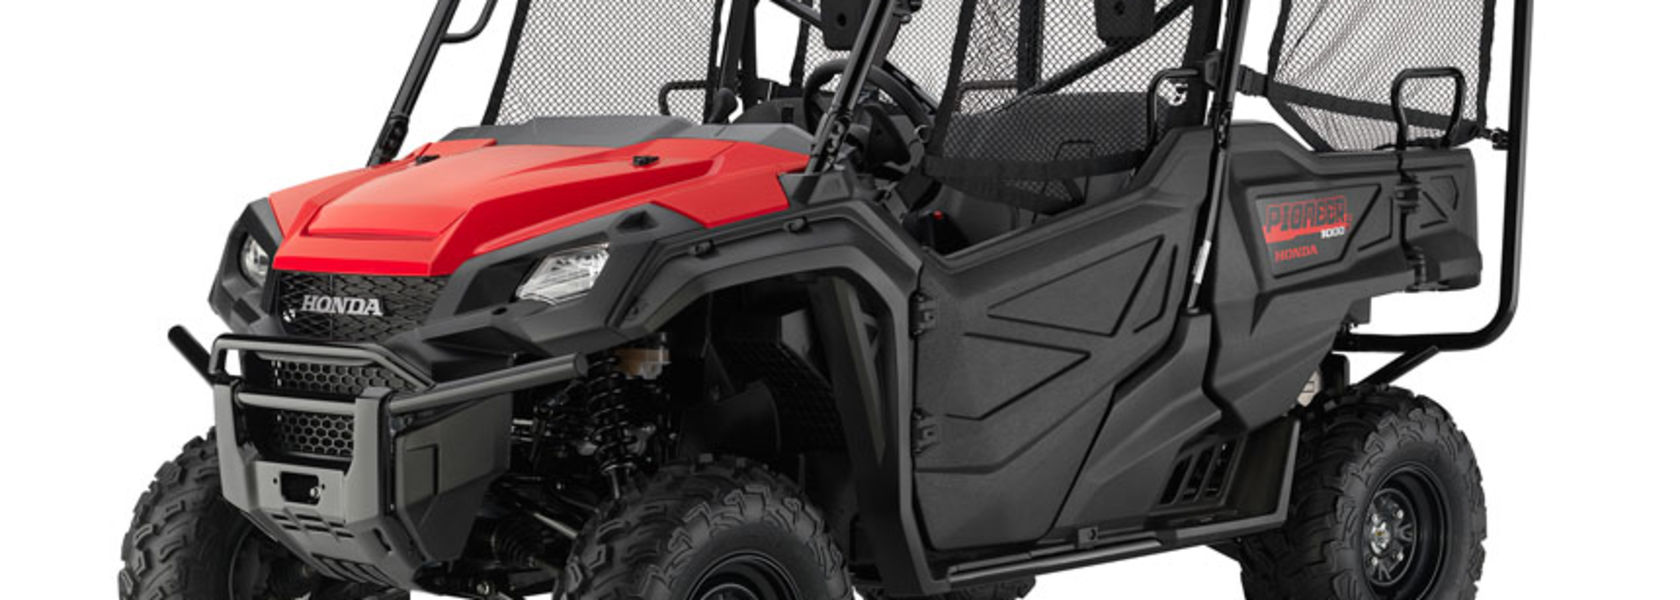 Honda Pioneer upgraded for 2017